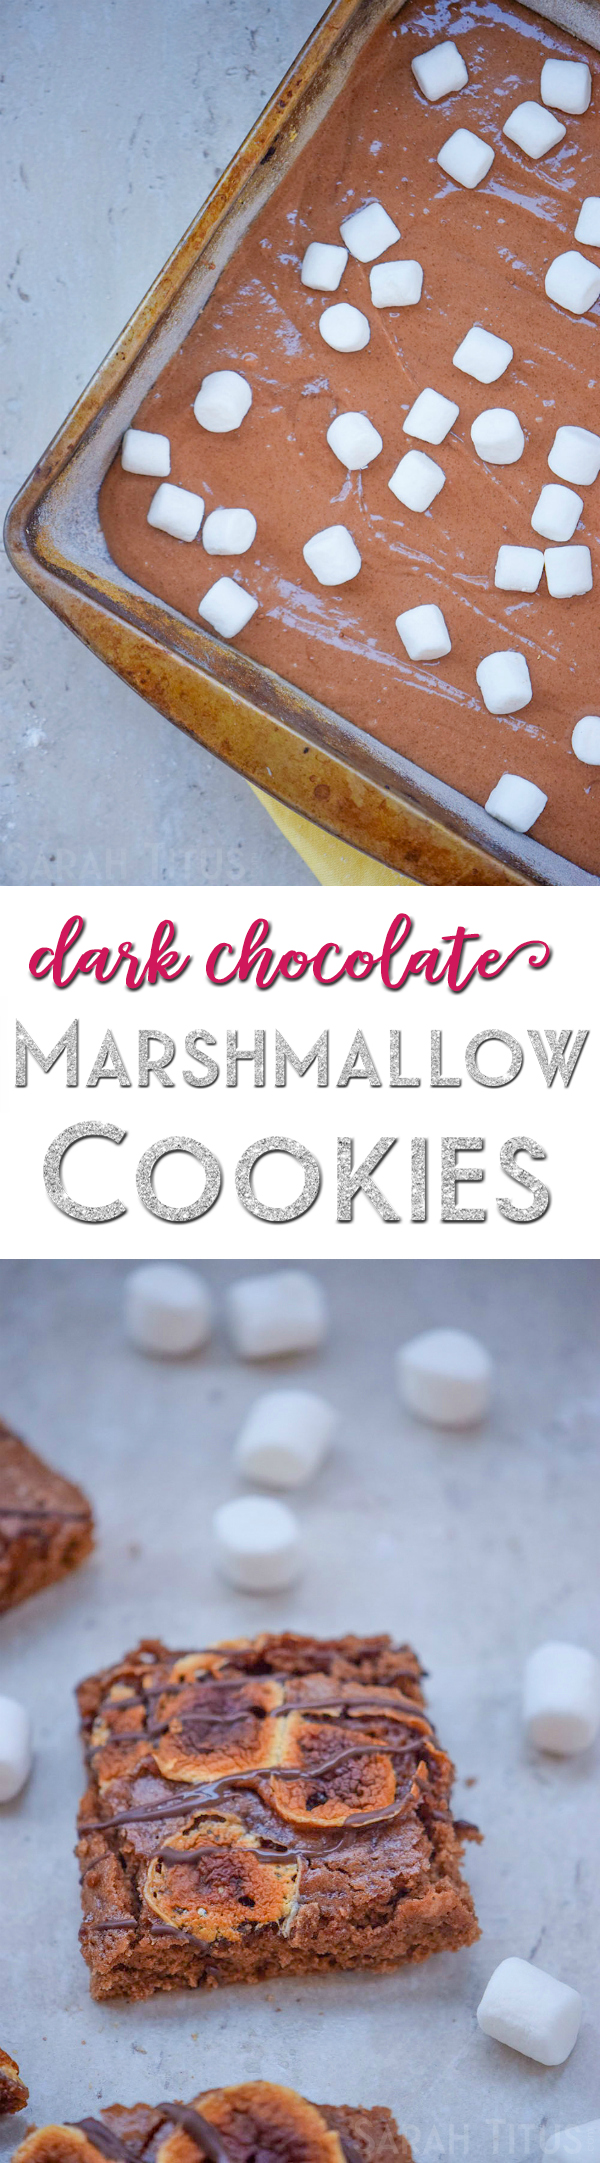 Do you love Rocky Road ice cream? Who doesn't, right?! That was the inspiration for these decadently delicious Dark Chocolate Marshmallow Cookies. You'll love 'em!